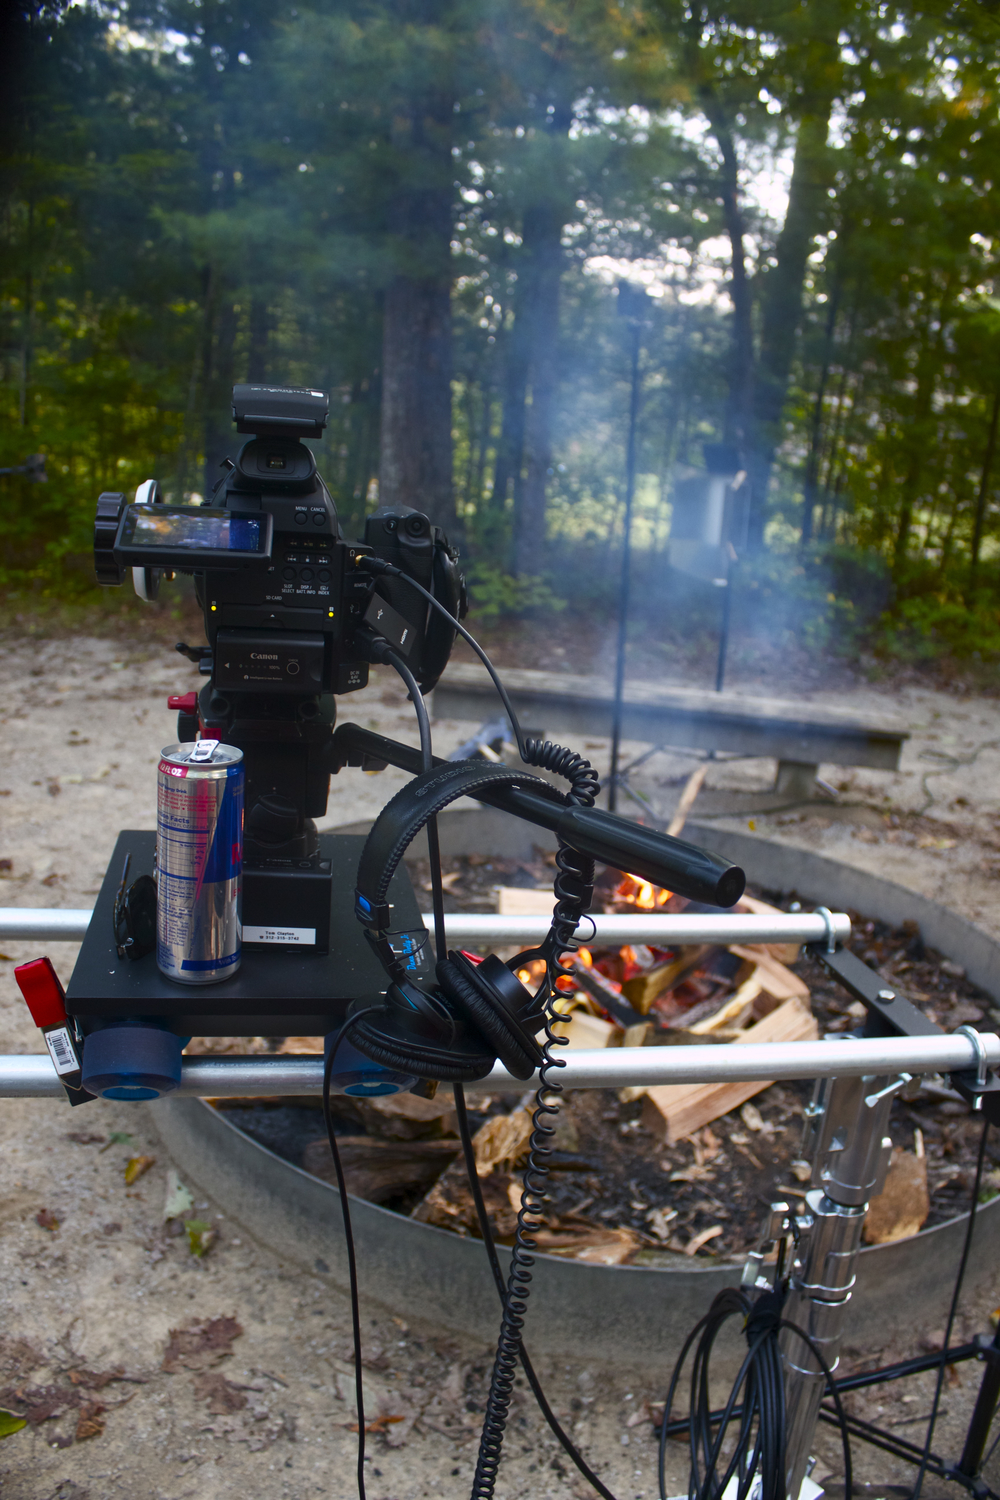 Canon C100, Dana Dolly, Red Bull